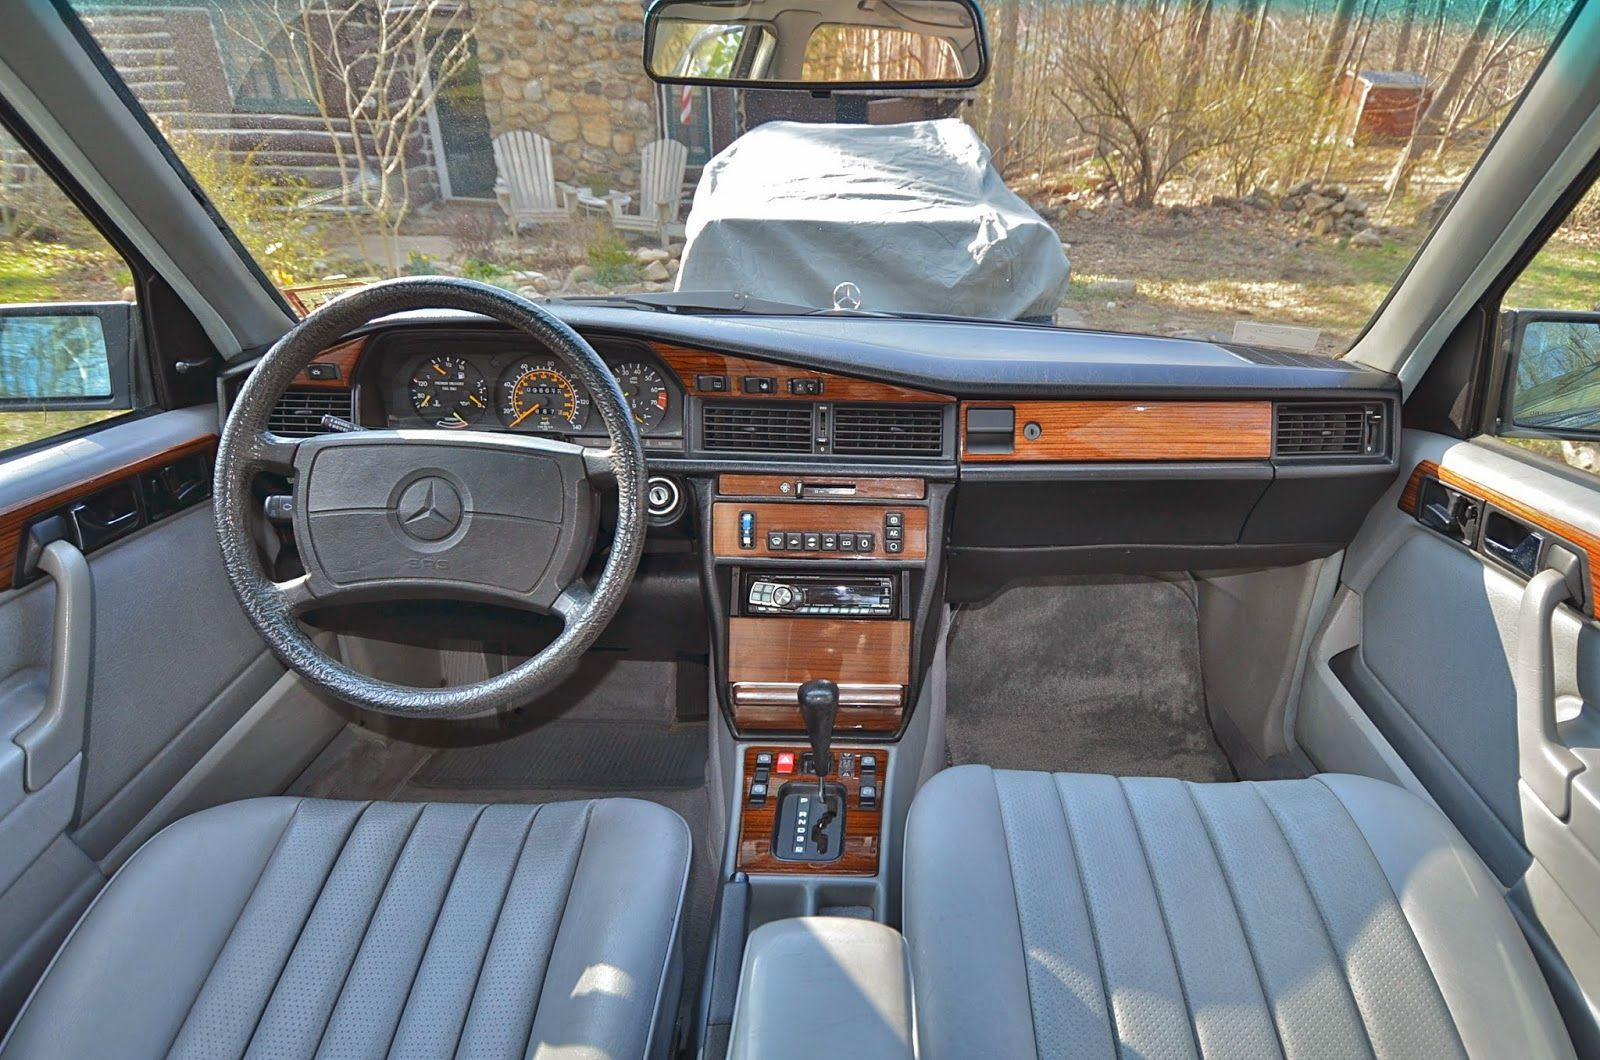 Theclassiccarfactory Com Mercedes Benz W201 190e 2 3 2 6 Cosworth Sportline Limited Edition Revi Mercedes Benz 190 Mercedes Interior Mercedes Benz 190e